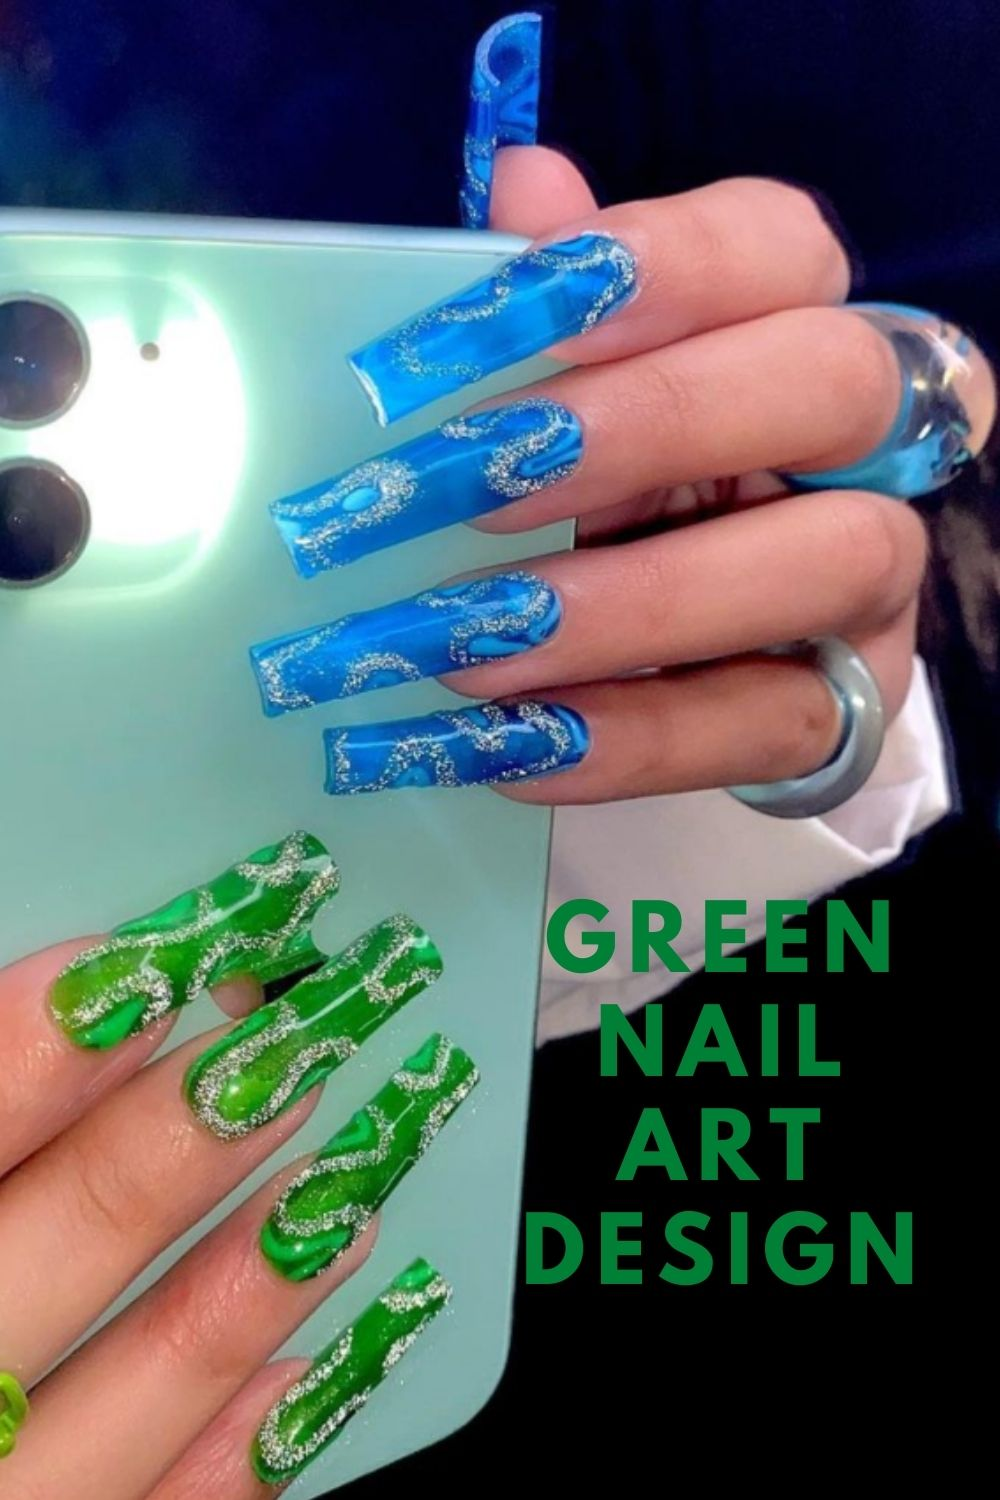 Fun coffin nails designs for summer nails 2021